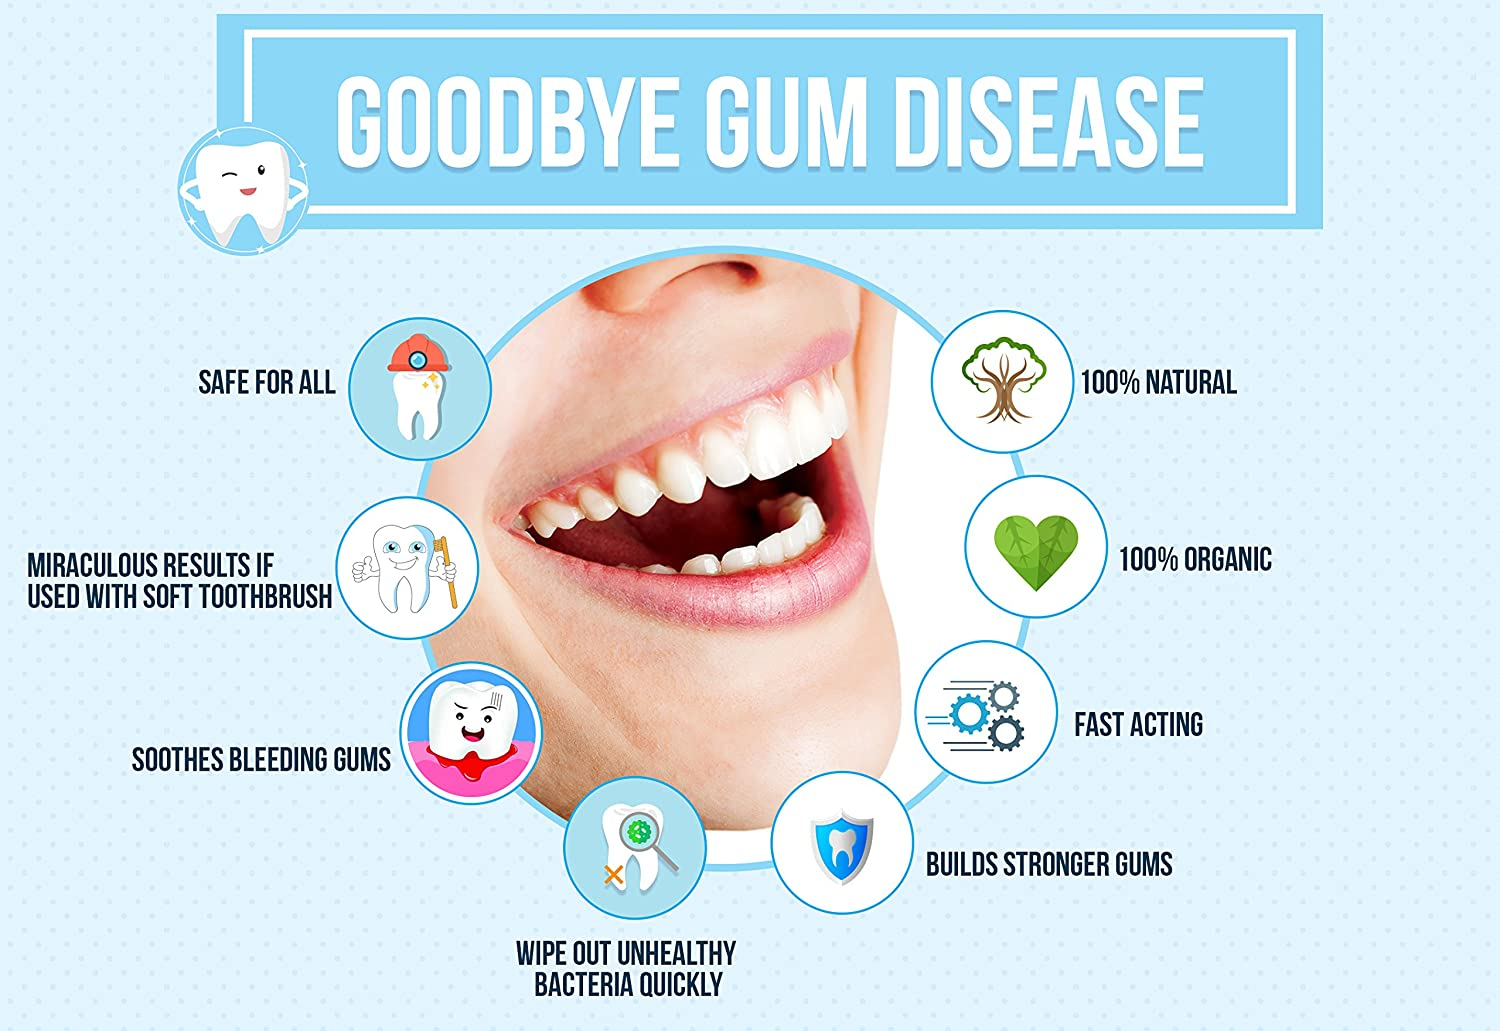 images IfYou Have Receding OrUnhealthy Gums, Here Are Proven Solutions